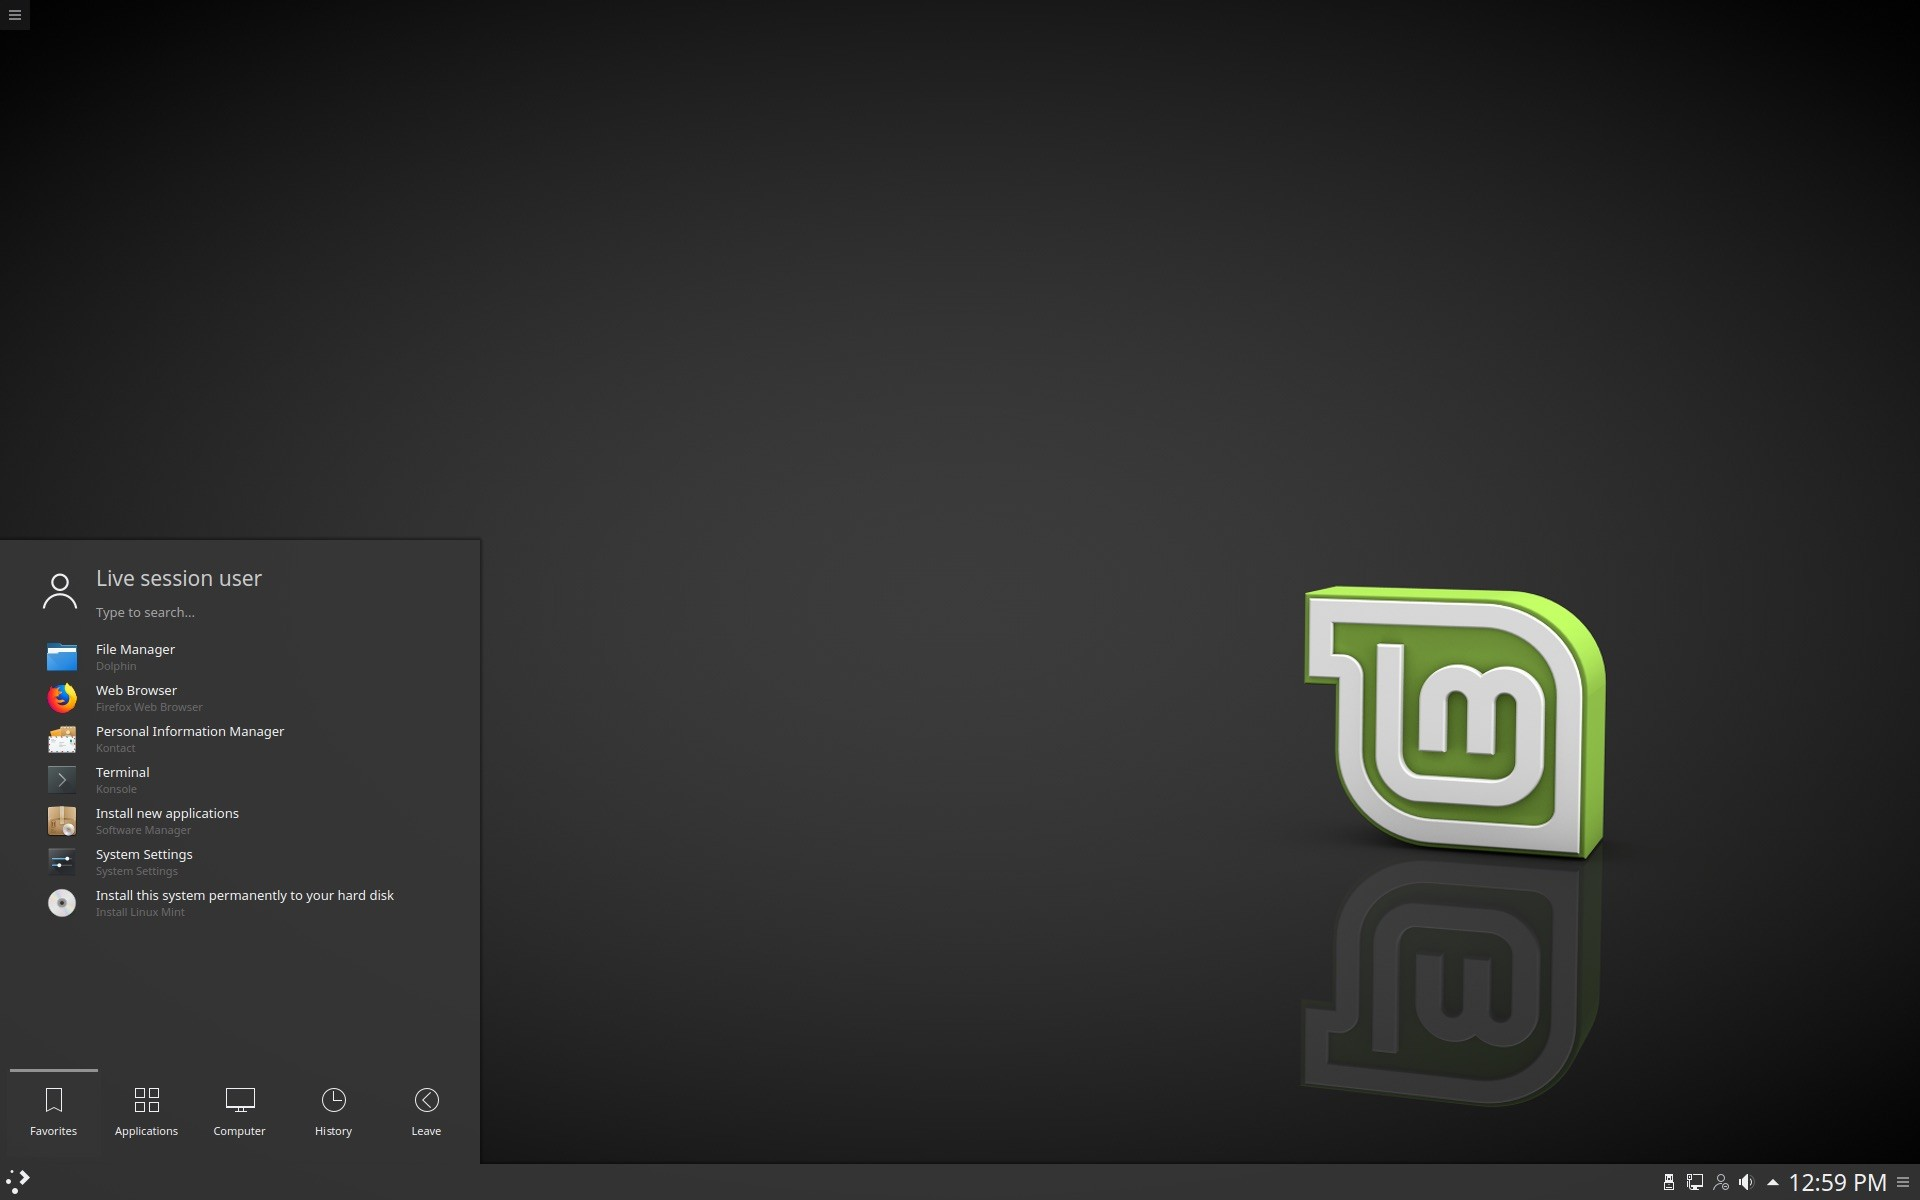 linux-mint-18-3-sylvia-kde-and-xfce-beta-editions-now-available-for-download-518801-2.jpg